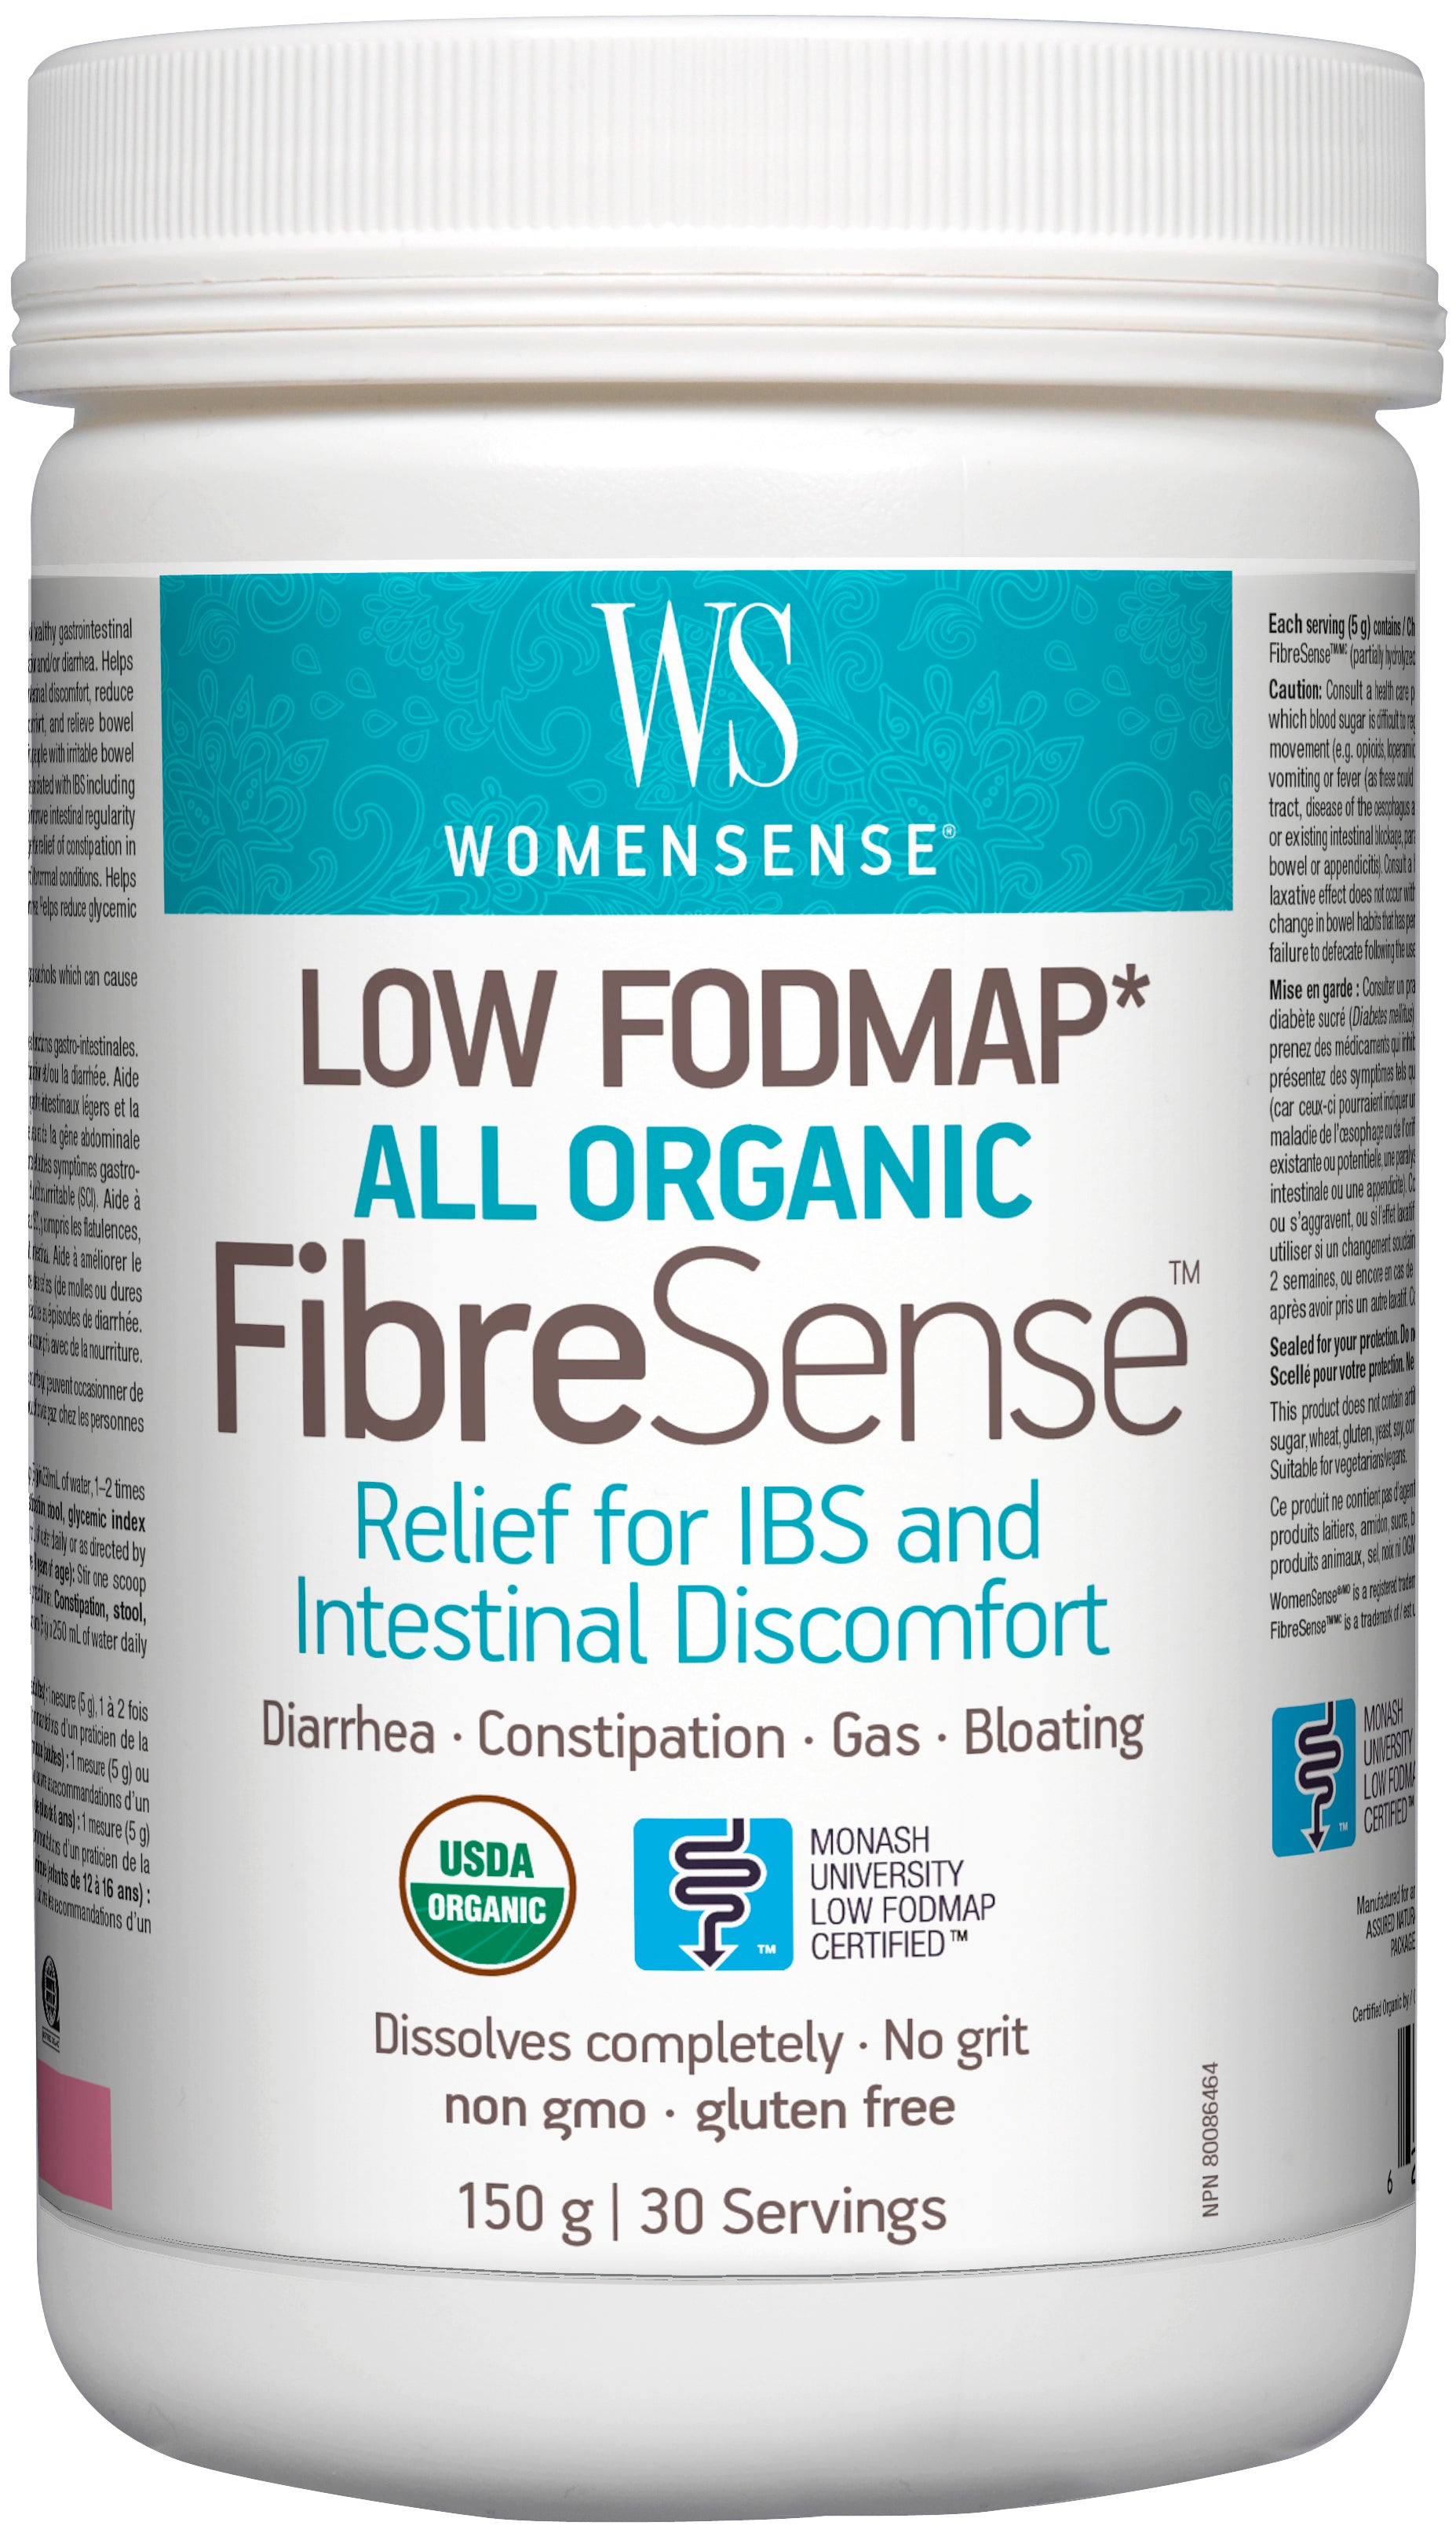 FibroSense Low FODMAP 150g